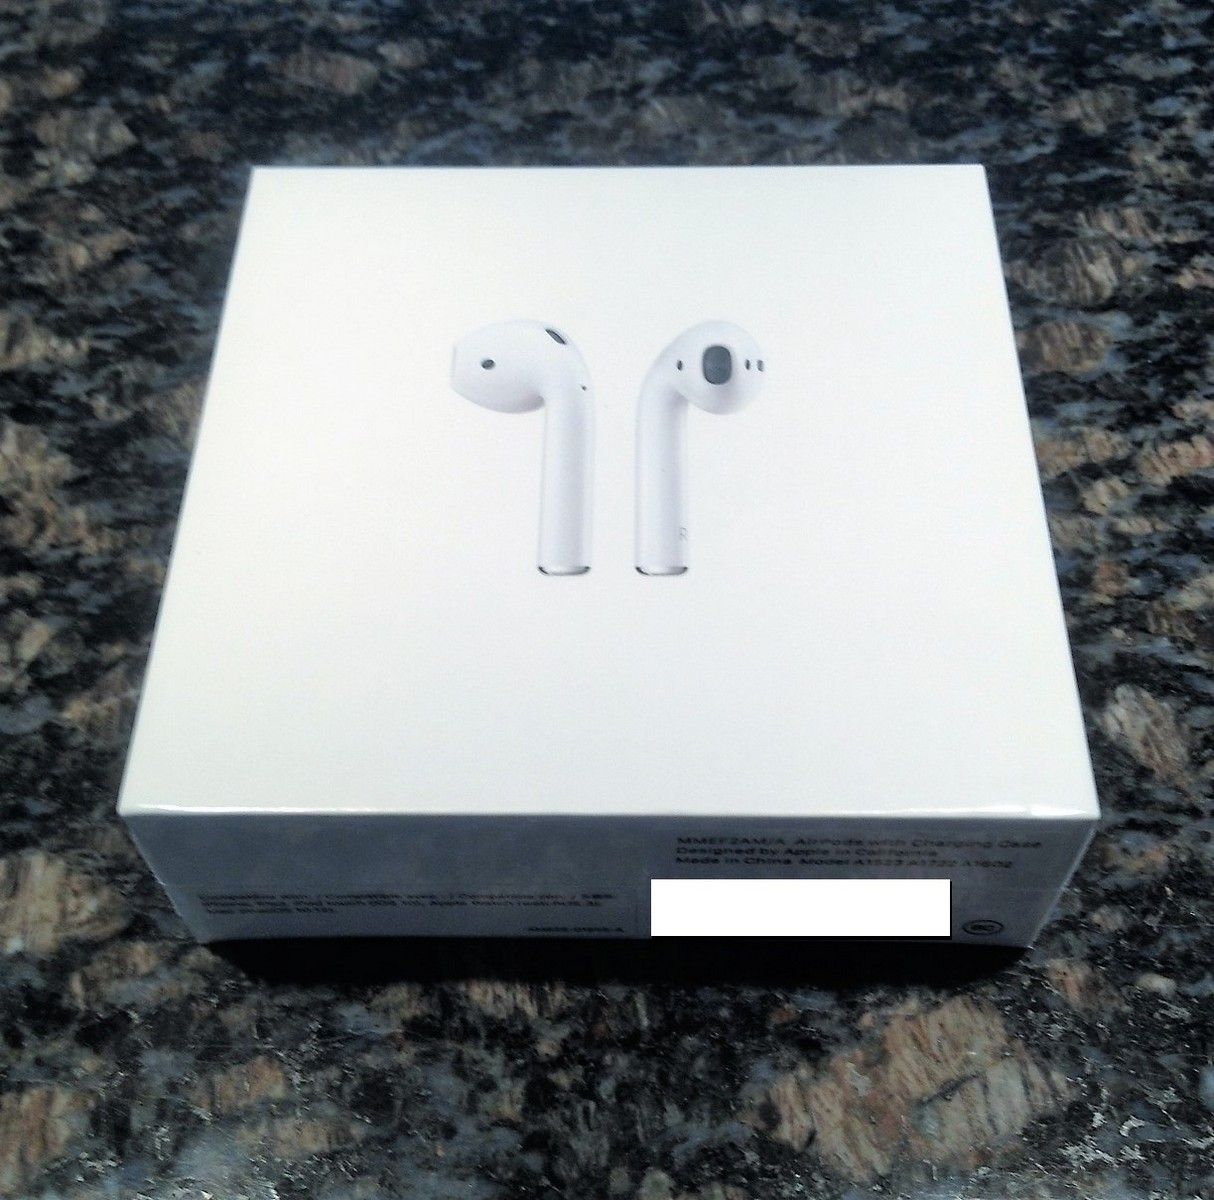 Reselling Apple AirPods